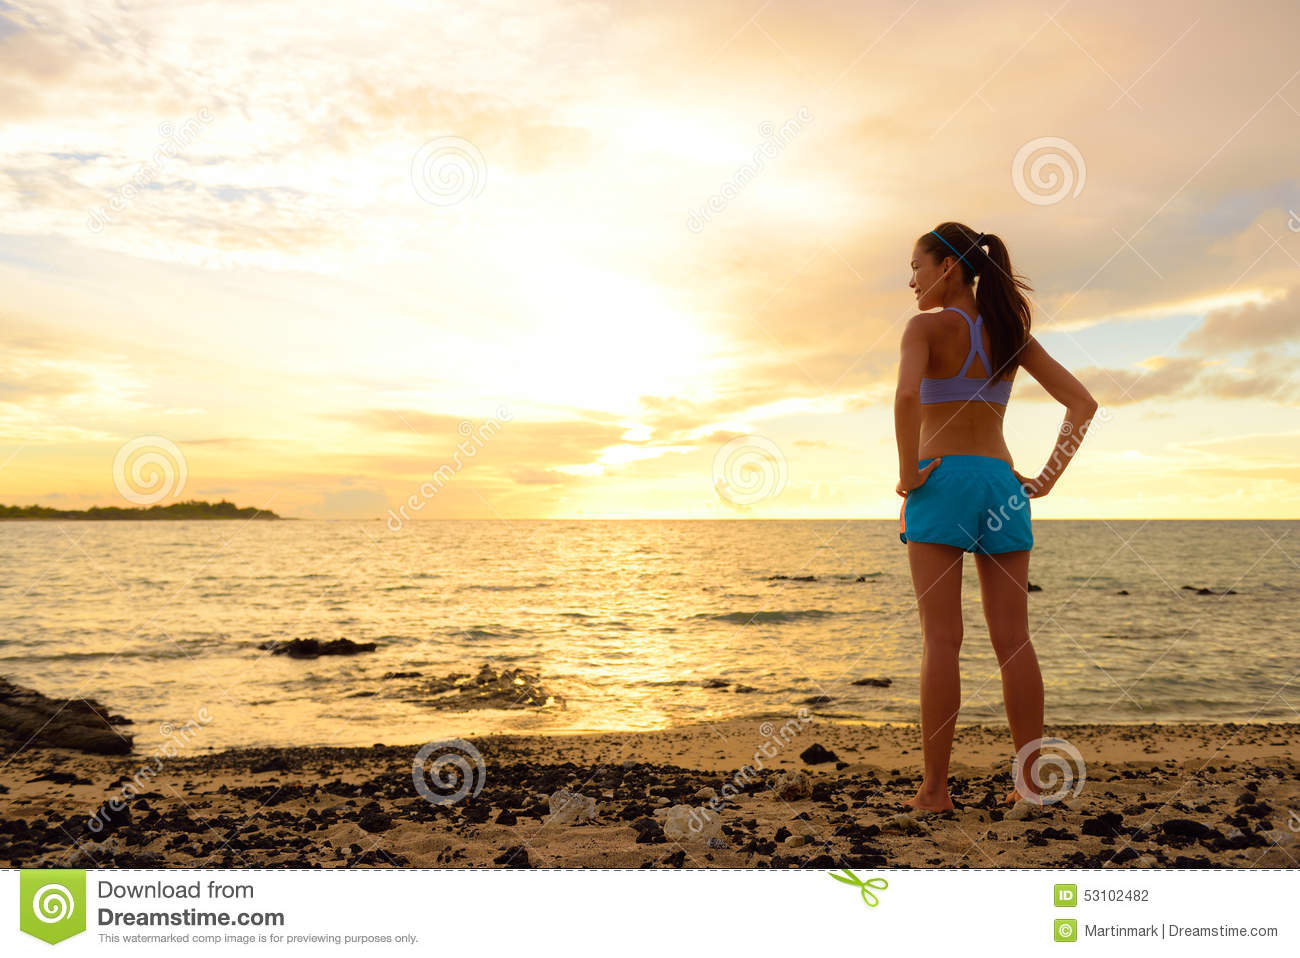 Aspirations - woman looking away with inspiration